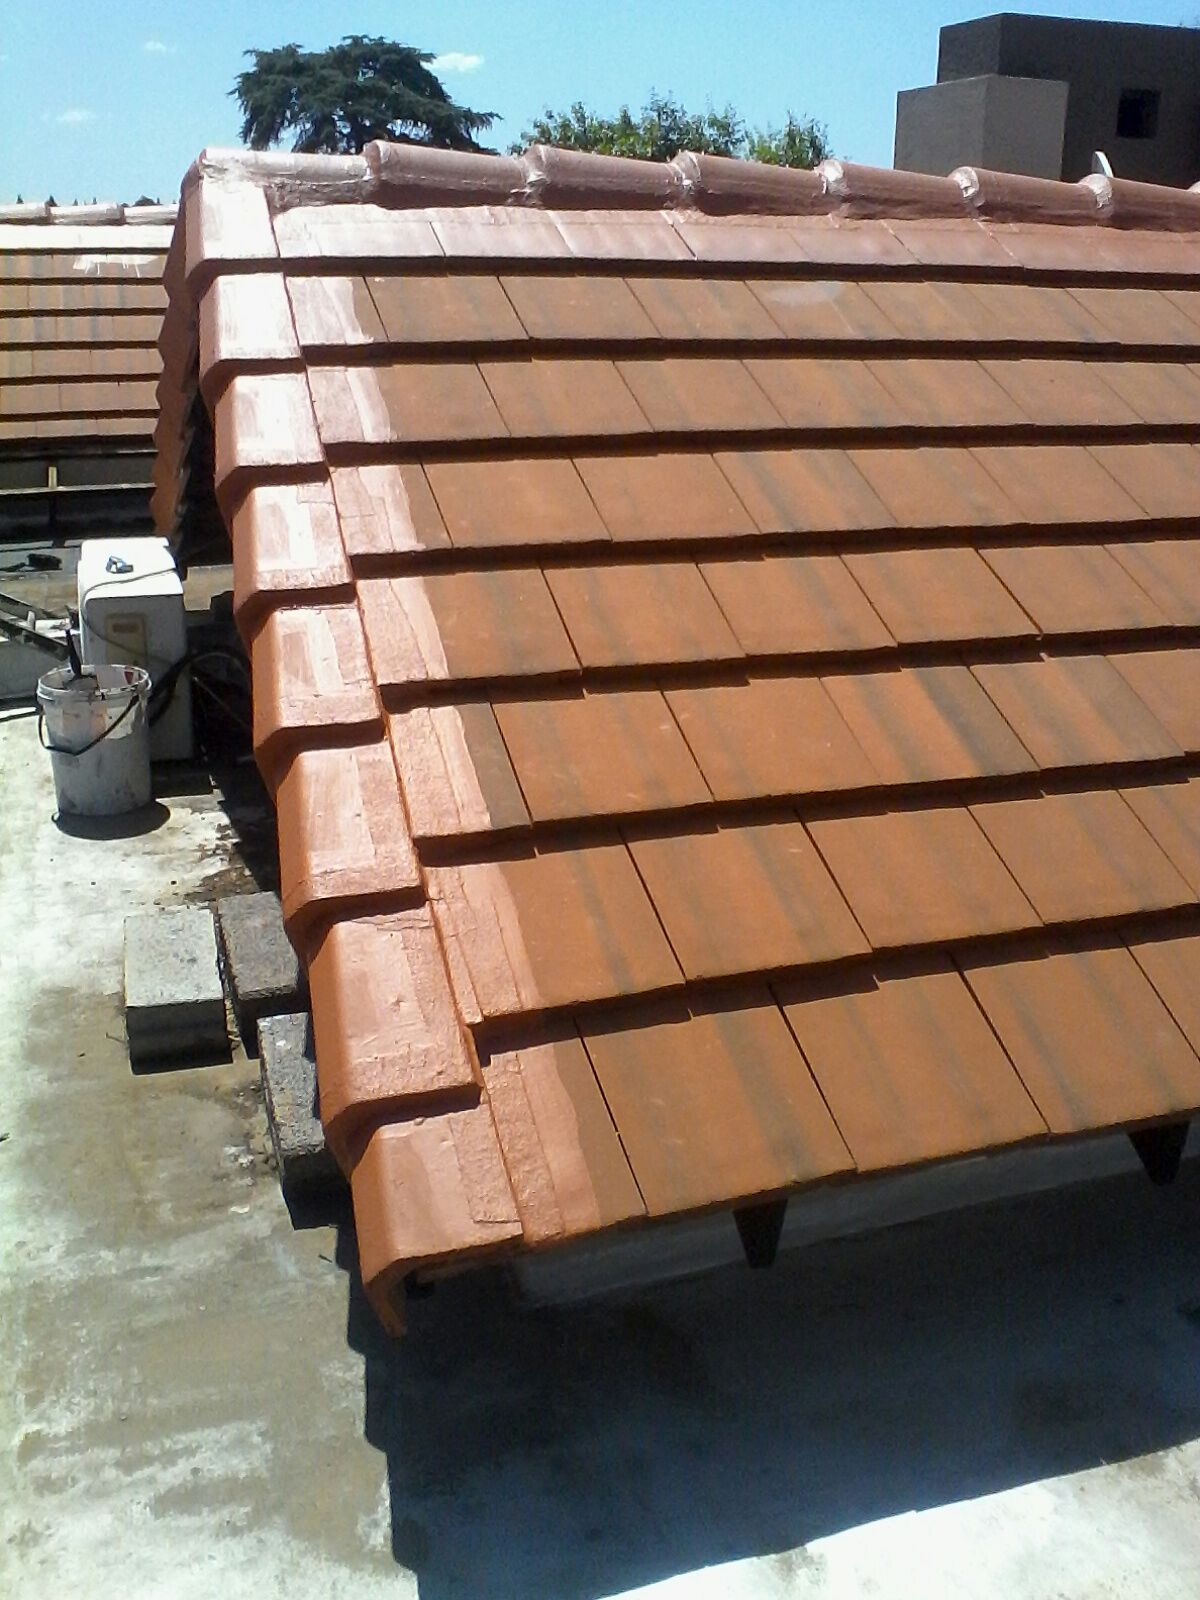 Waterproofing-completed-on-Tile-Roofs.jpg